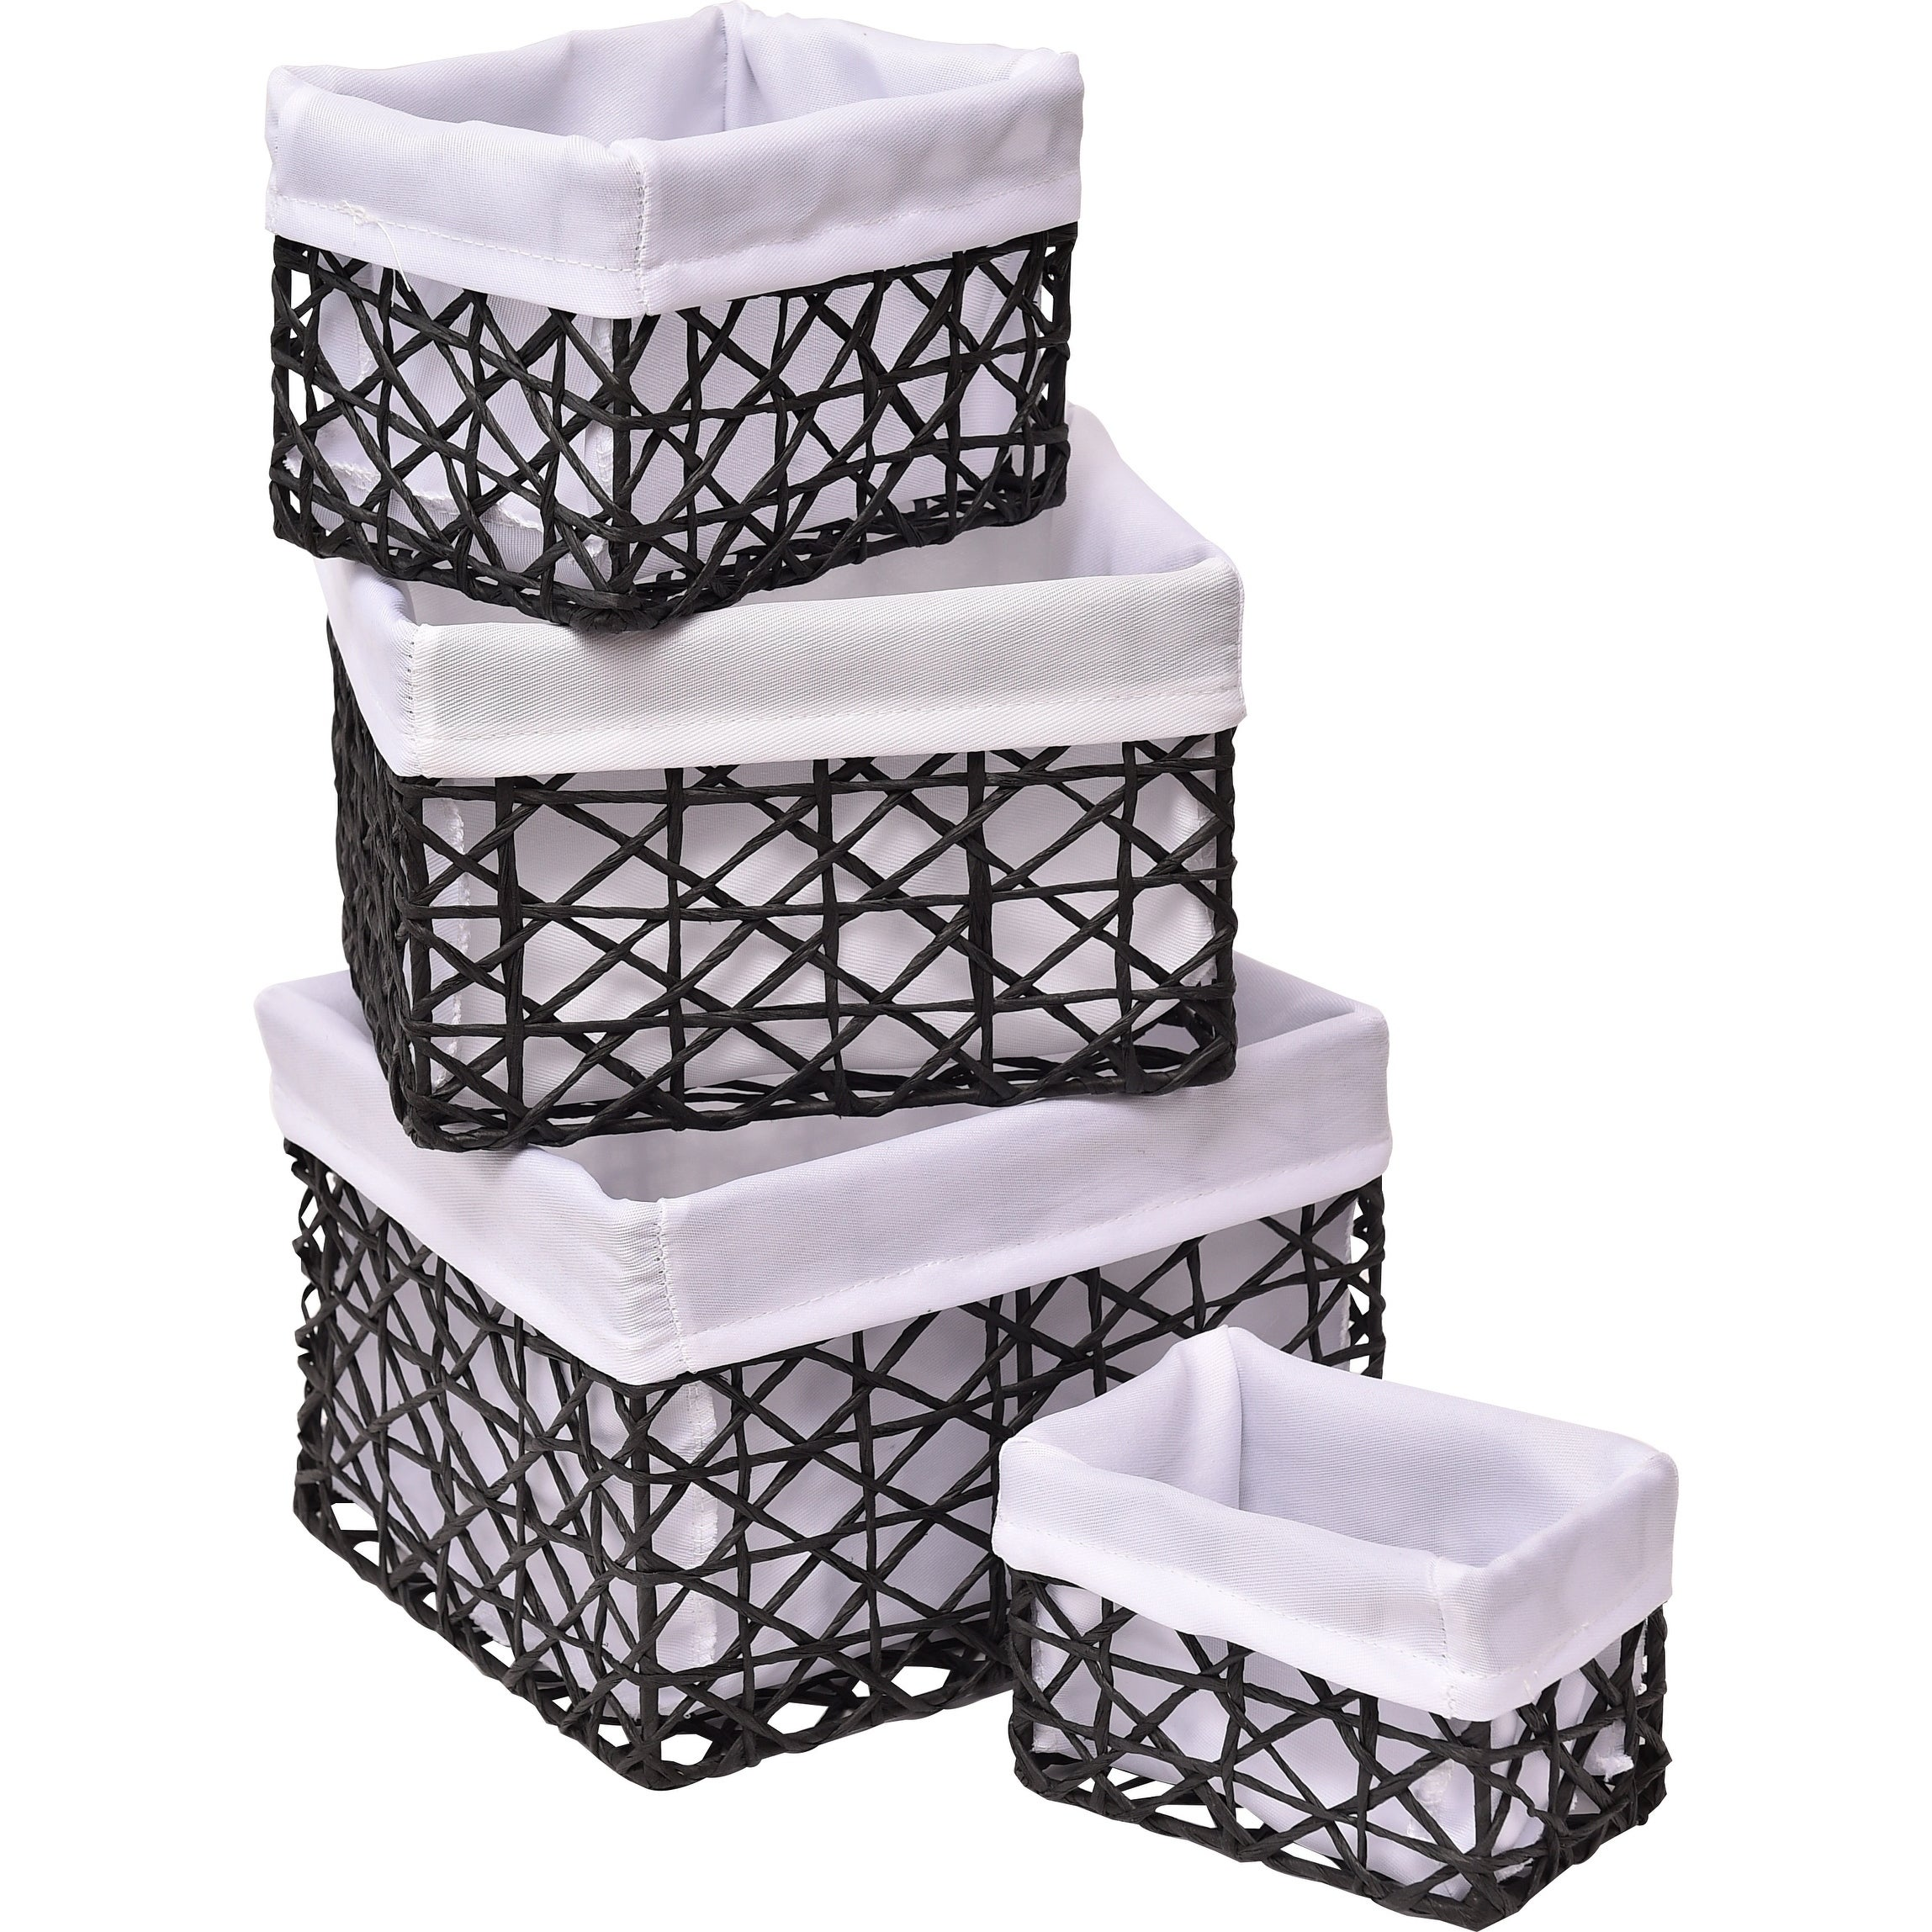 Evideco Paper Rope Storage Utilities Shelf Baskets Set Of 4   Free Shipping  Today   Overstock   23828081